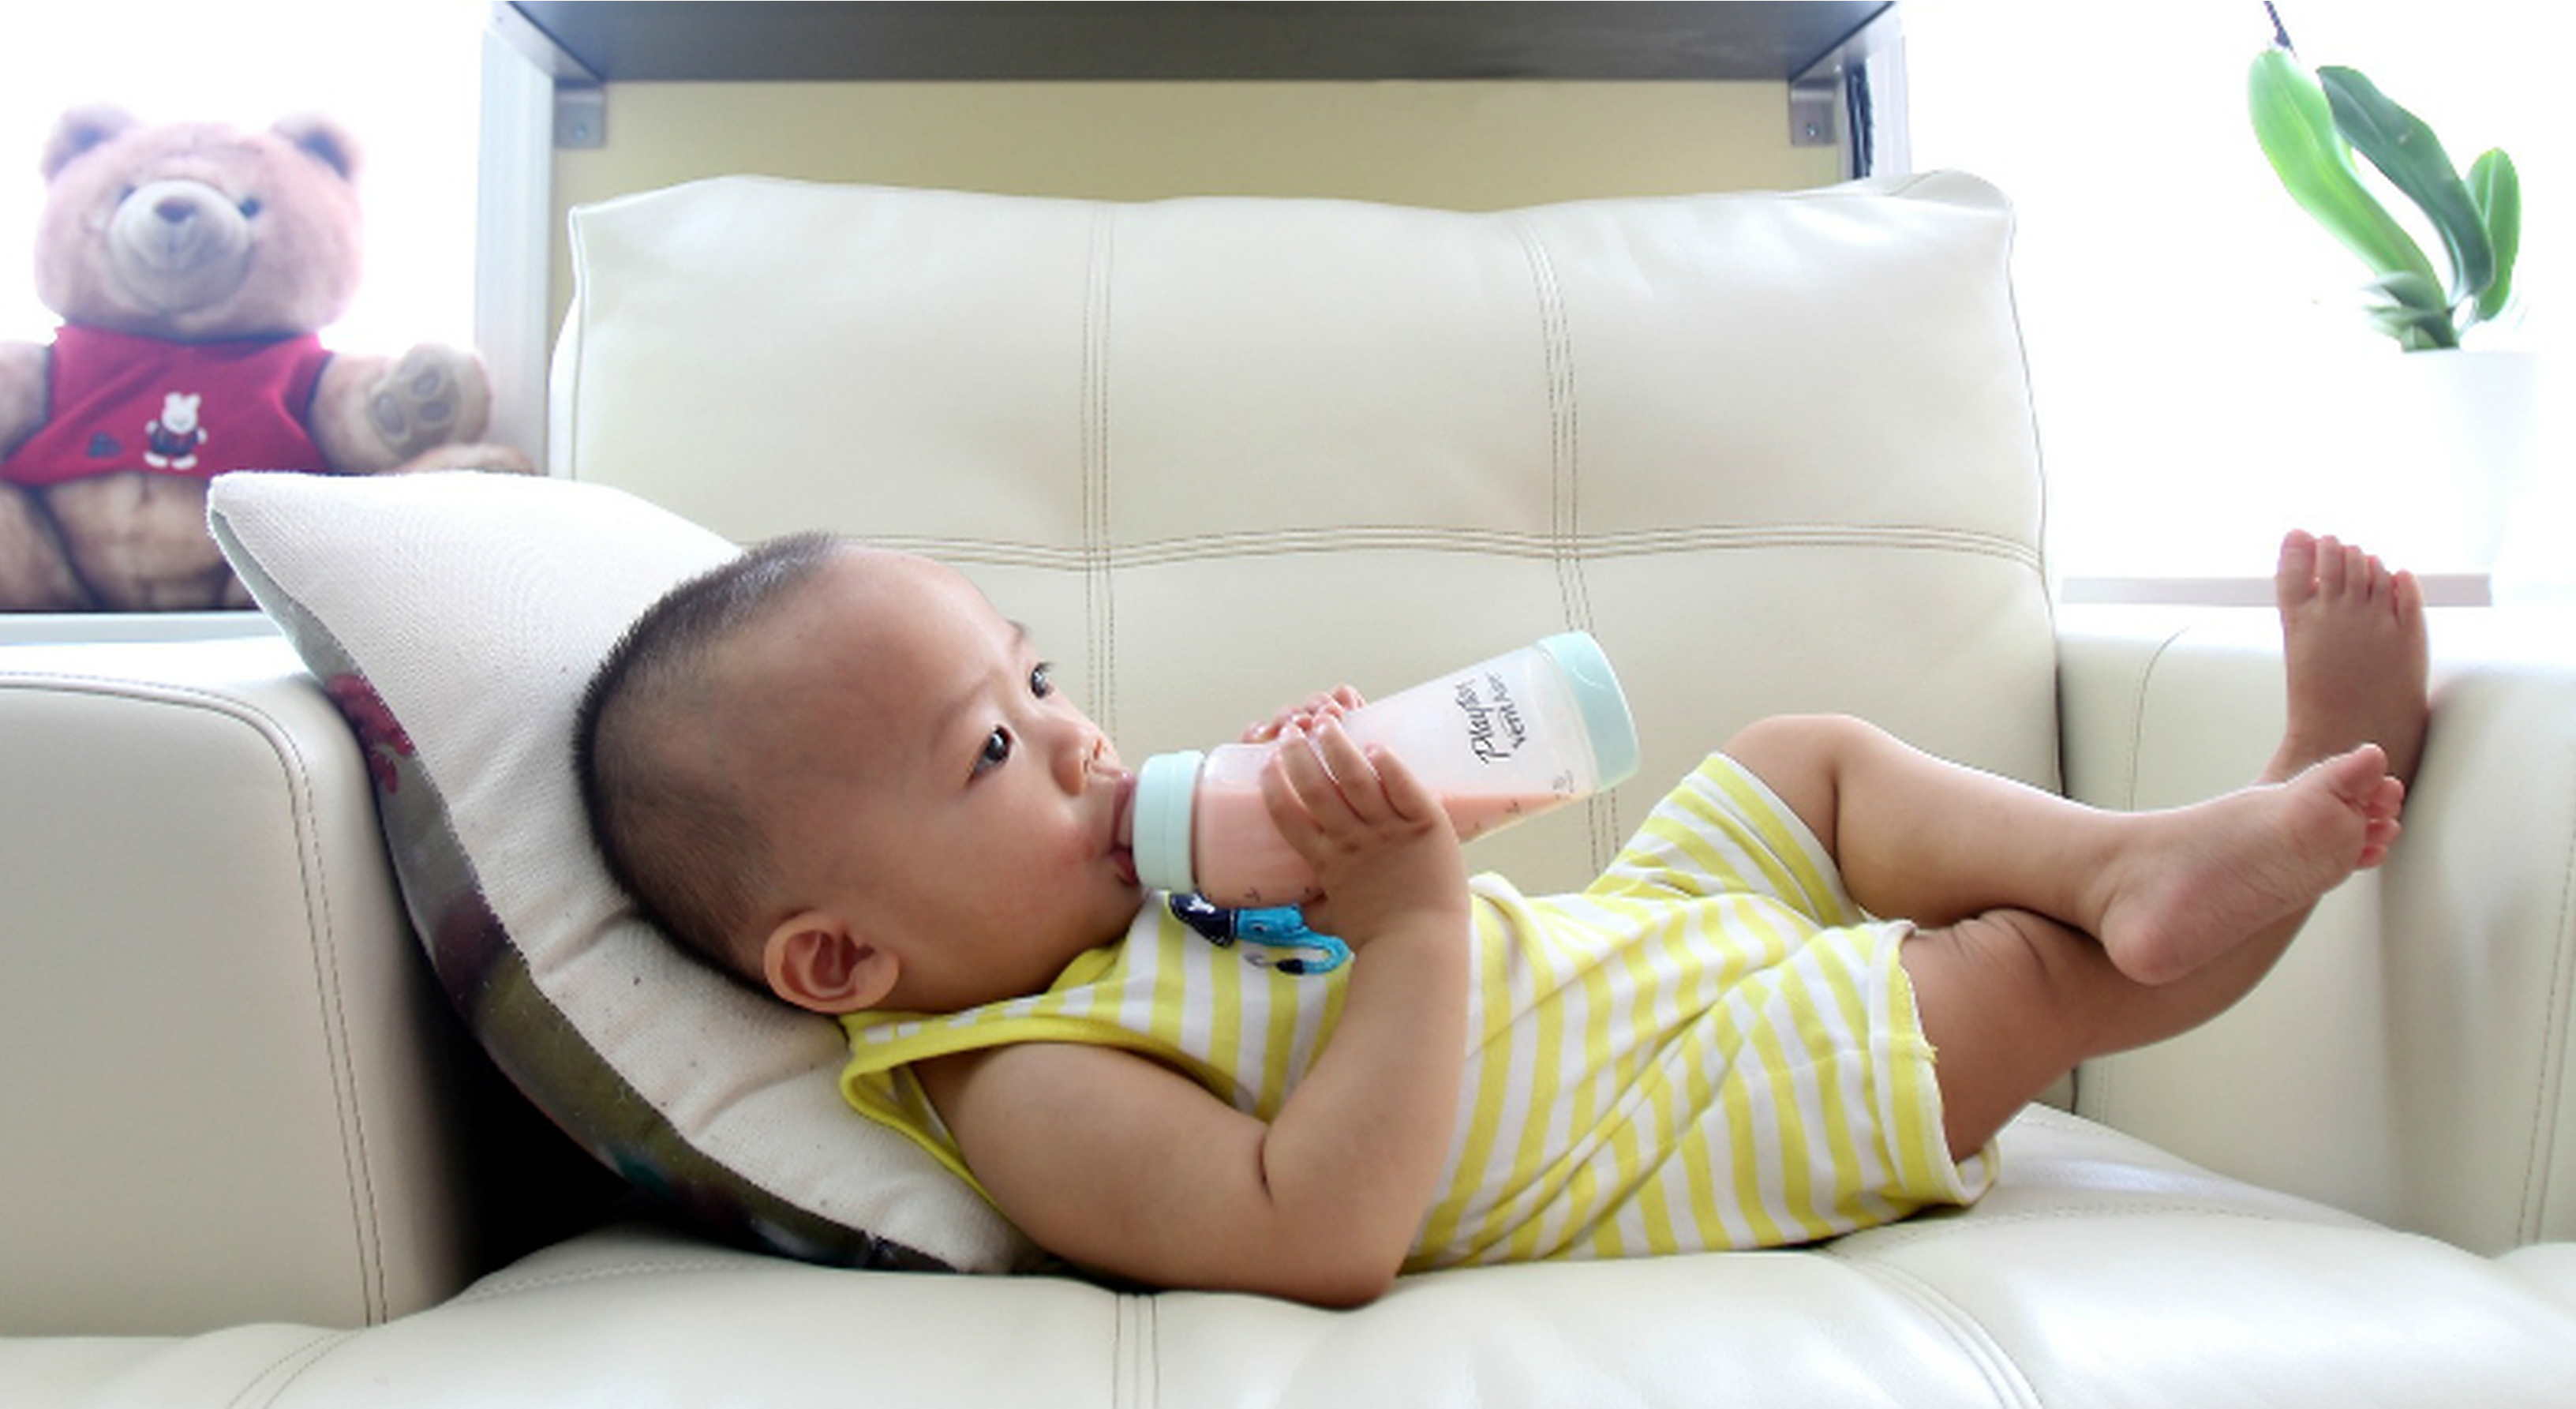 Toddler on sofa drinking pink liquid from a nursing bottle